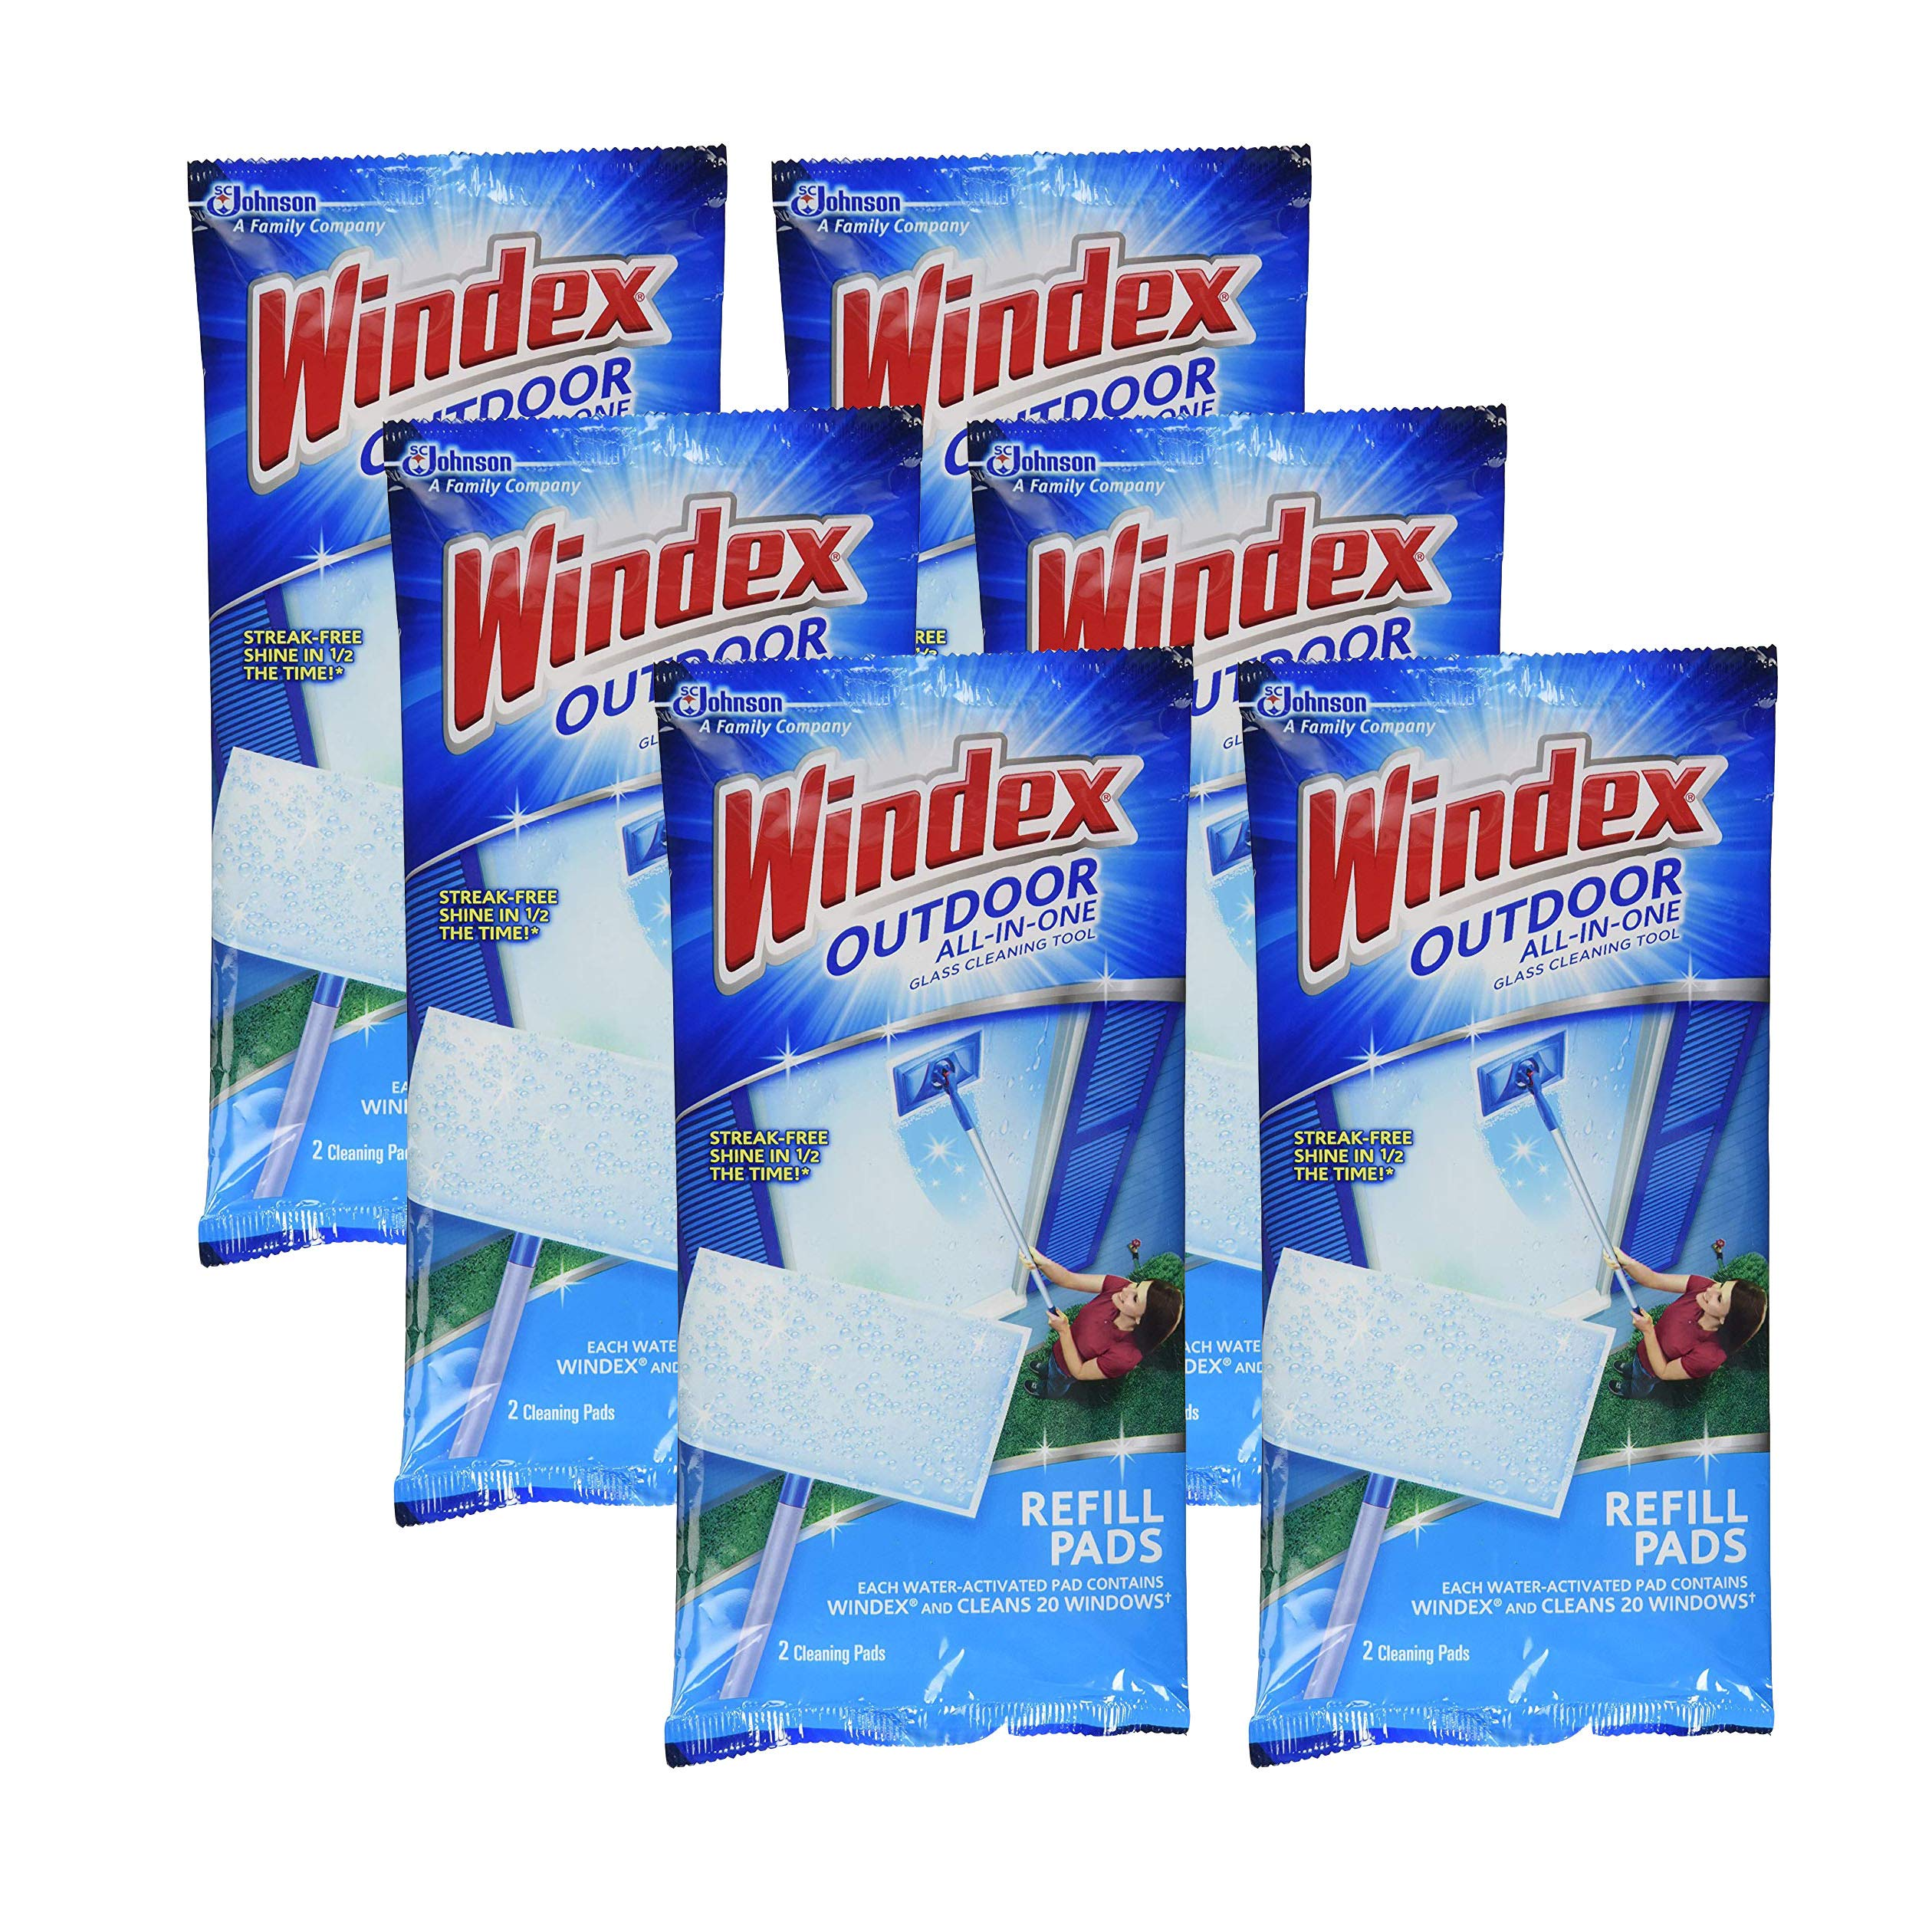 Windex All-in-One Window Cleaner Pads Refill - 2 ct (6 Pack)